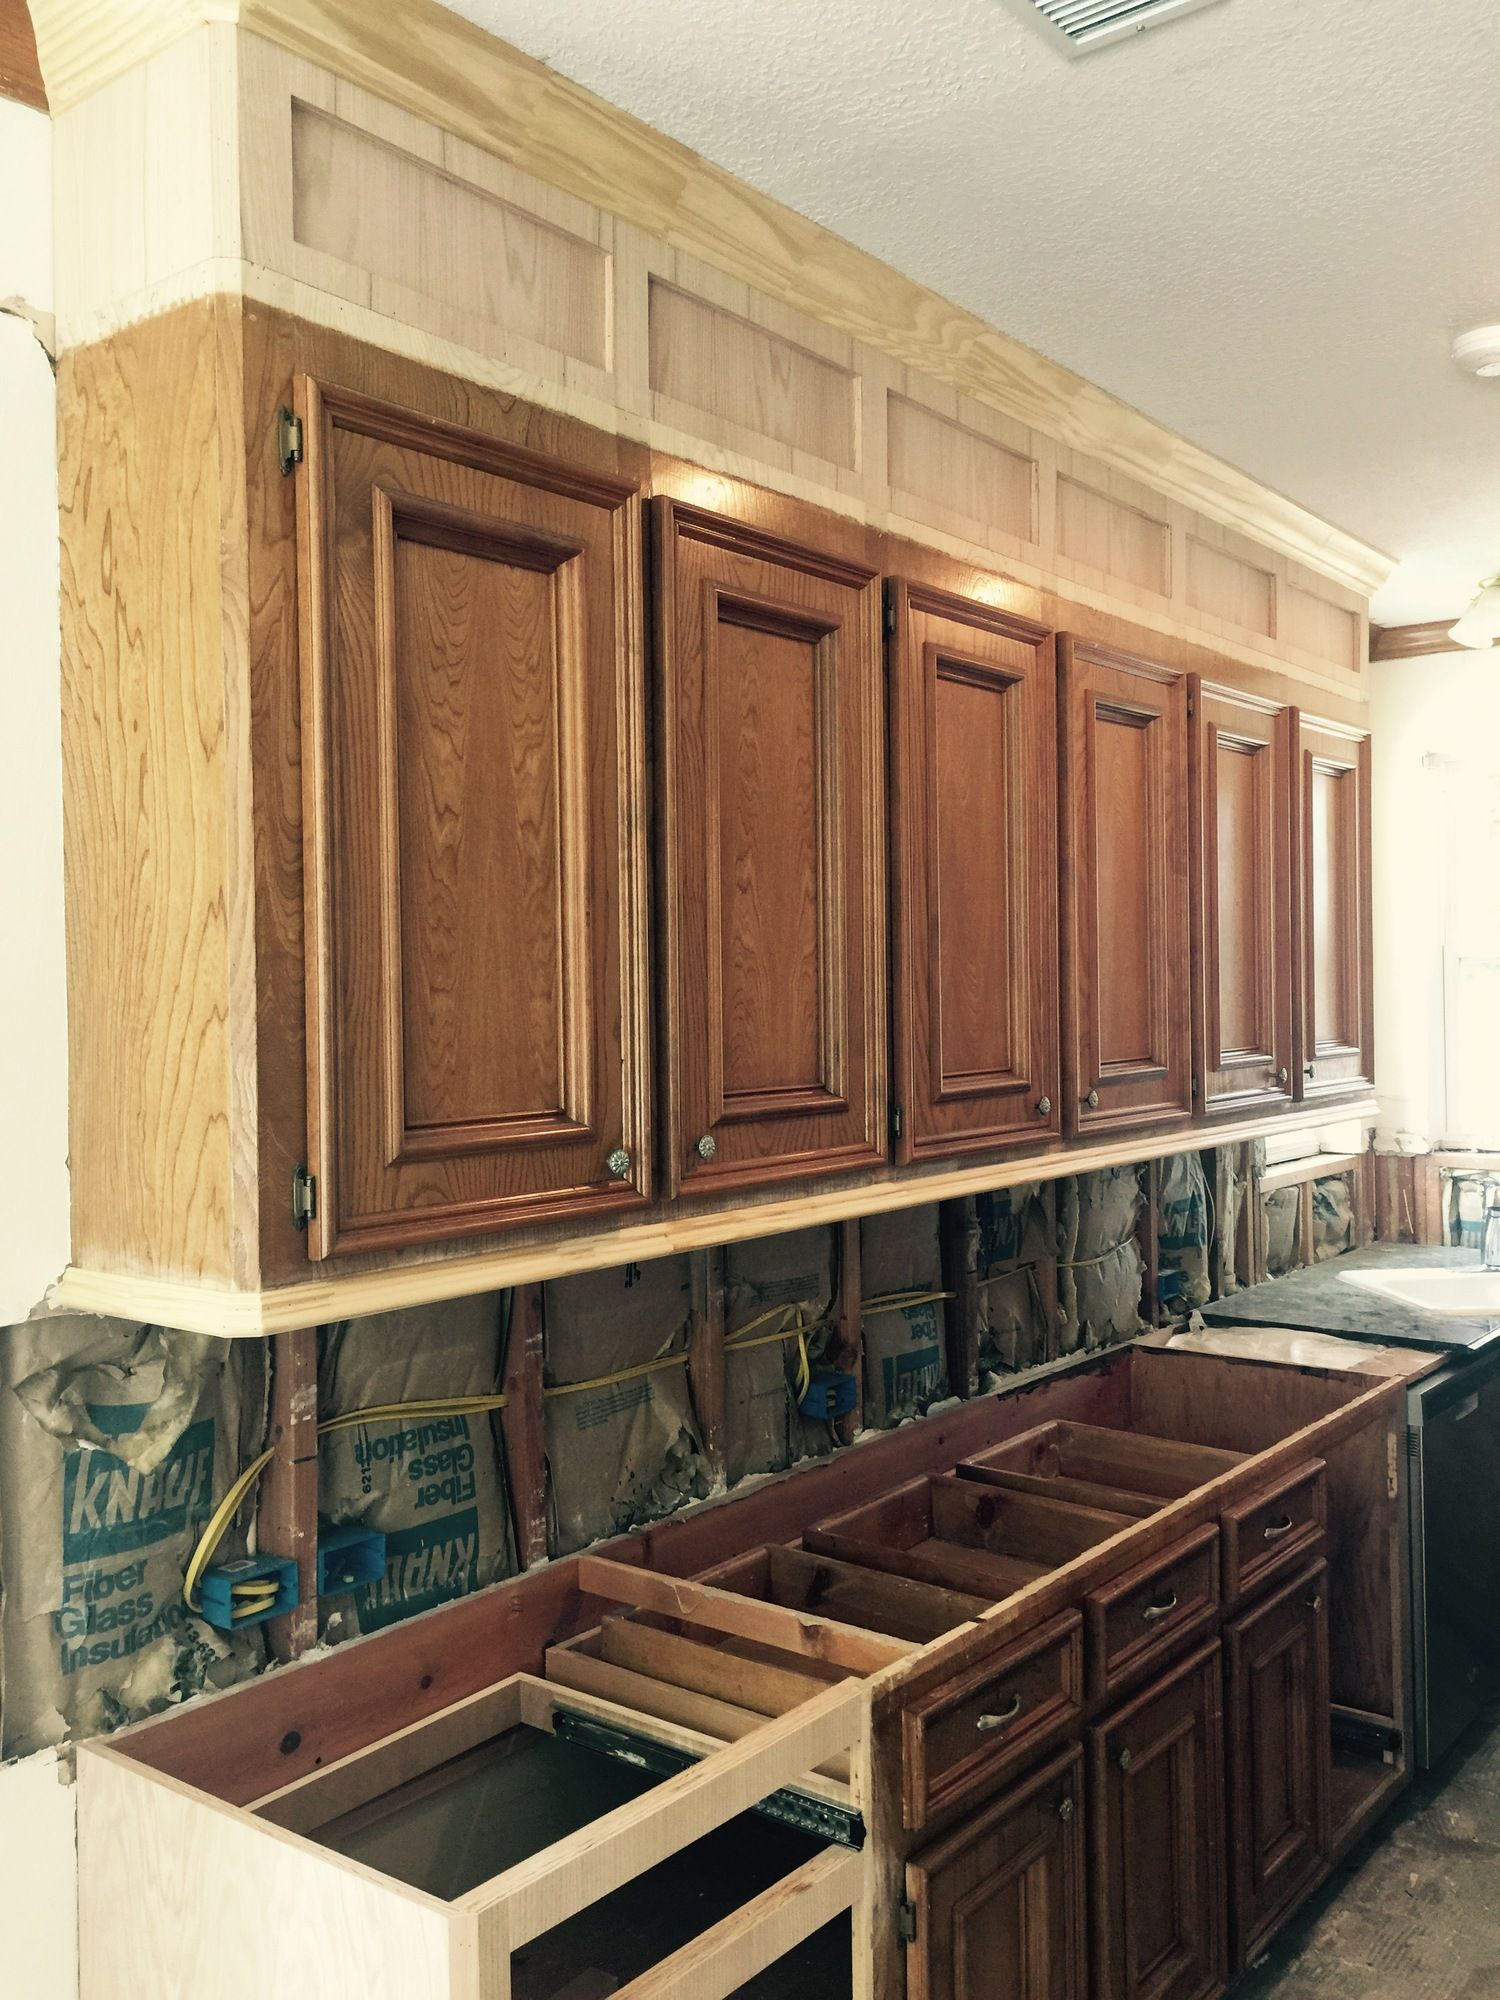 Should Kitchen Cabinets Go Up To Ceiling How To Make Ugly Cabinets Look Great Tiny Houses Texas Casita